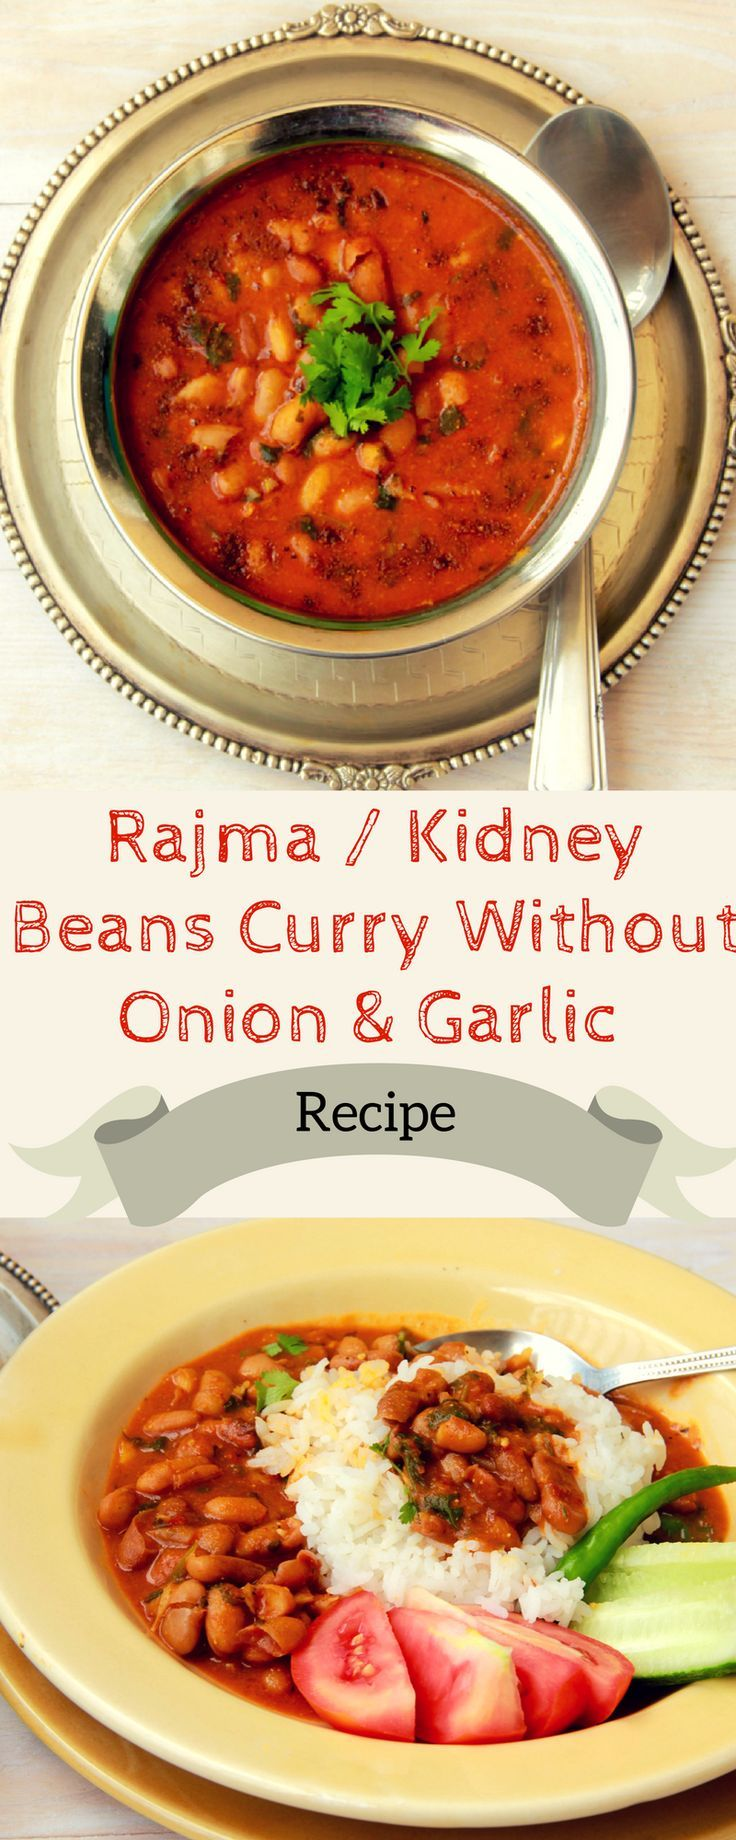 Rajma kidney been without onion garlic recipe jain recipes punjabi rajma without onion garlic a recipe for rajma red kidney bean curry without forumfinder Images